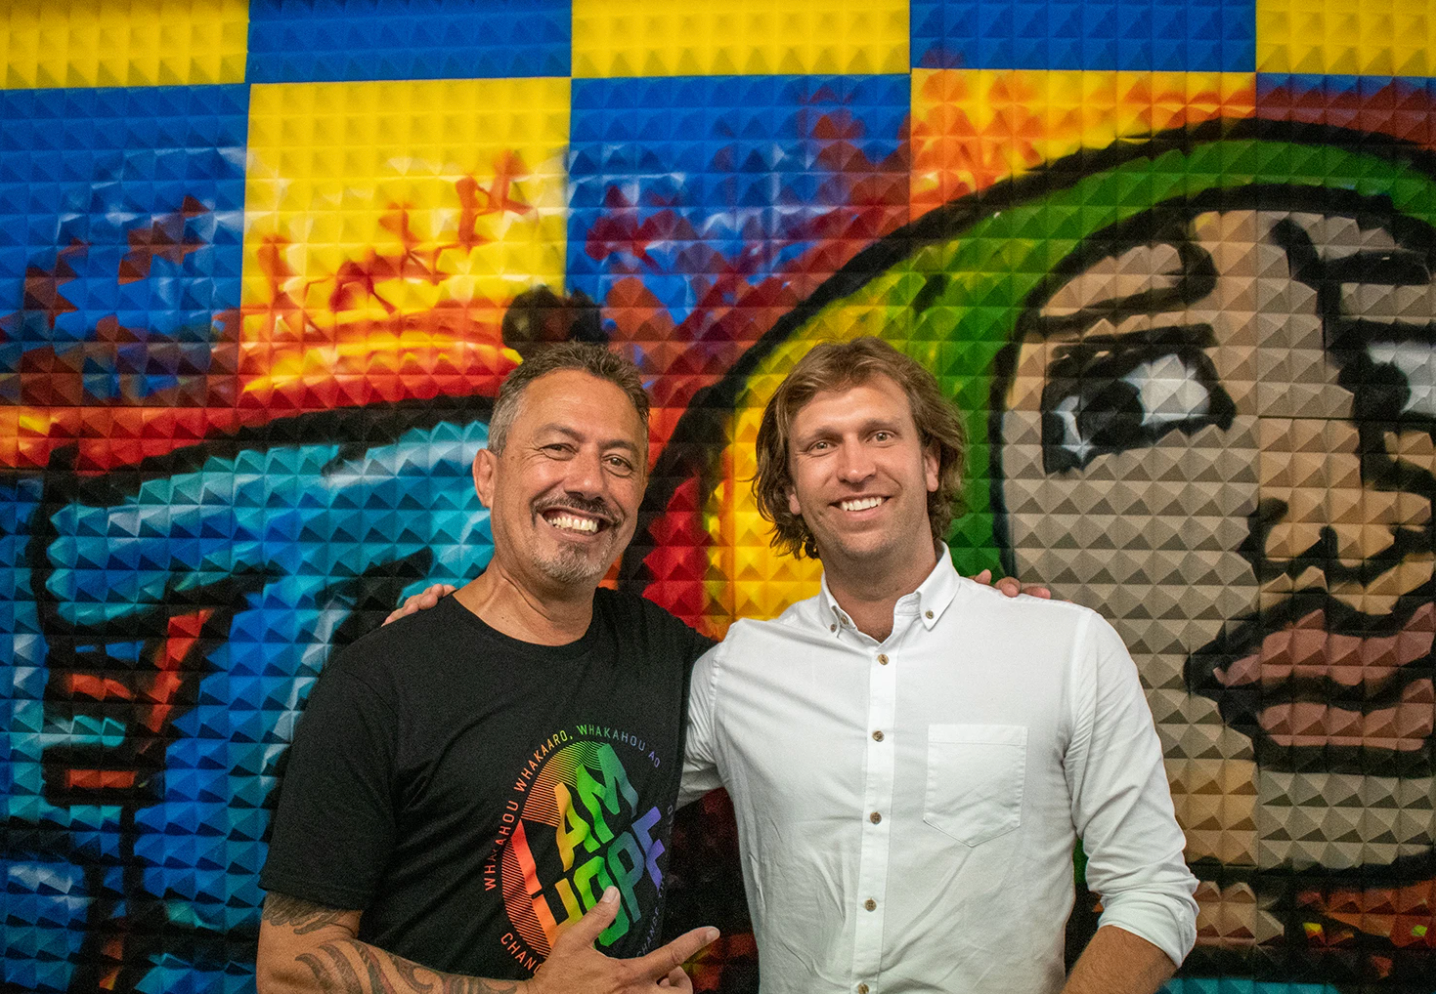 Founder of The Key to Life Charitable Trust, Mike King with Innocent Packaging General Manager Fraser Hanson, at the opening of Struggle Street Studio in December 2020